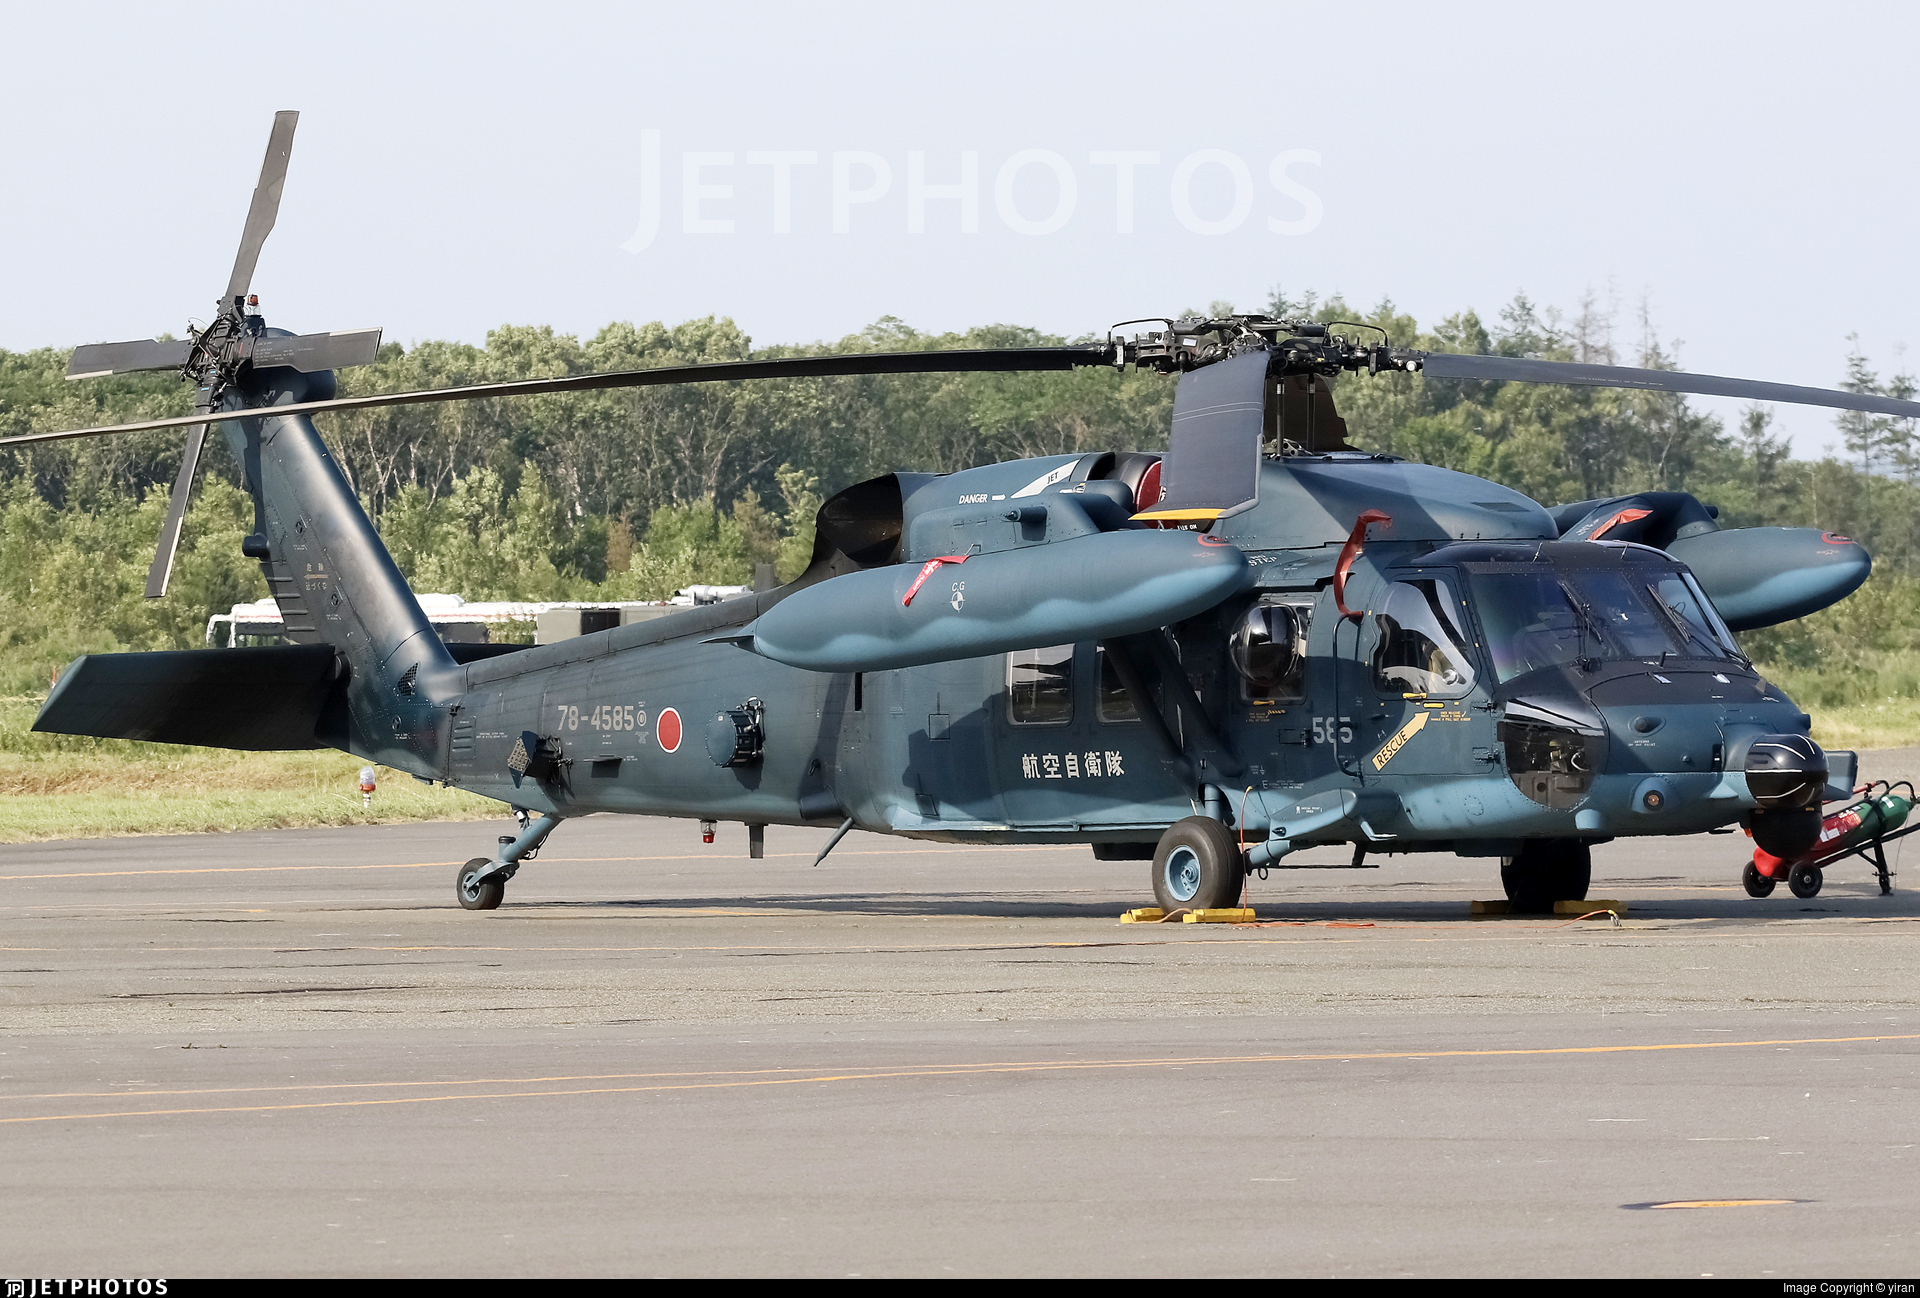 78-4585 - Mitsubishi UH-60J - Japan - Air Self Defence Force (JASDF)